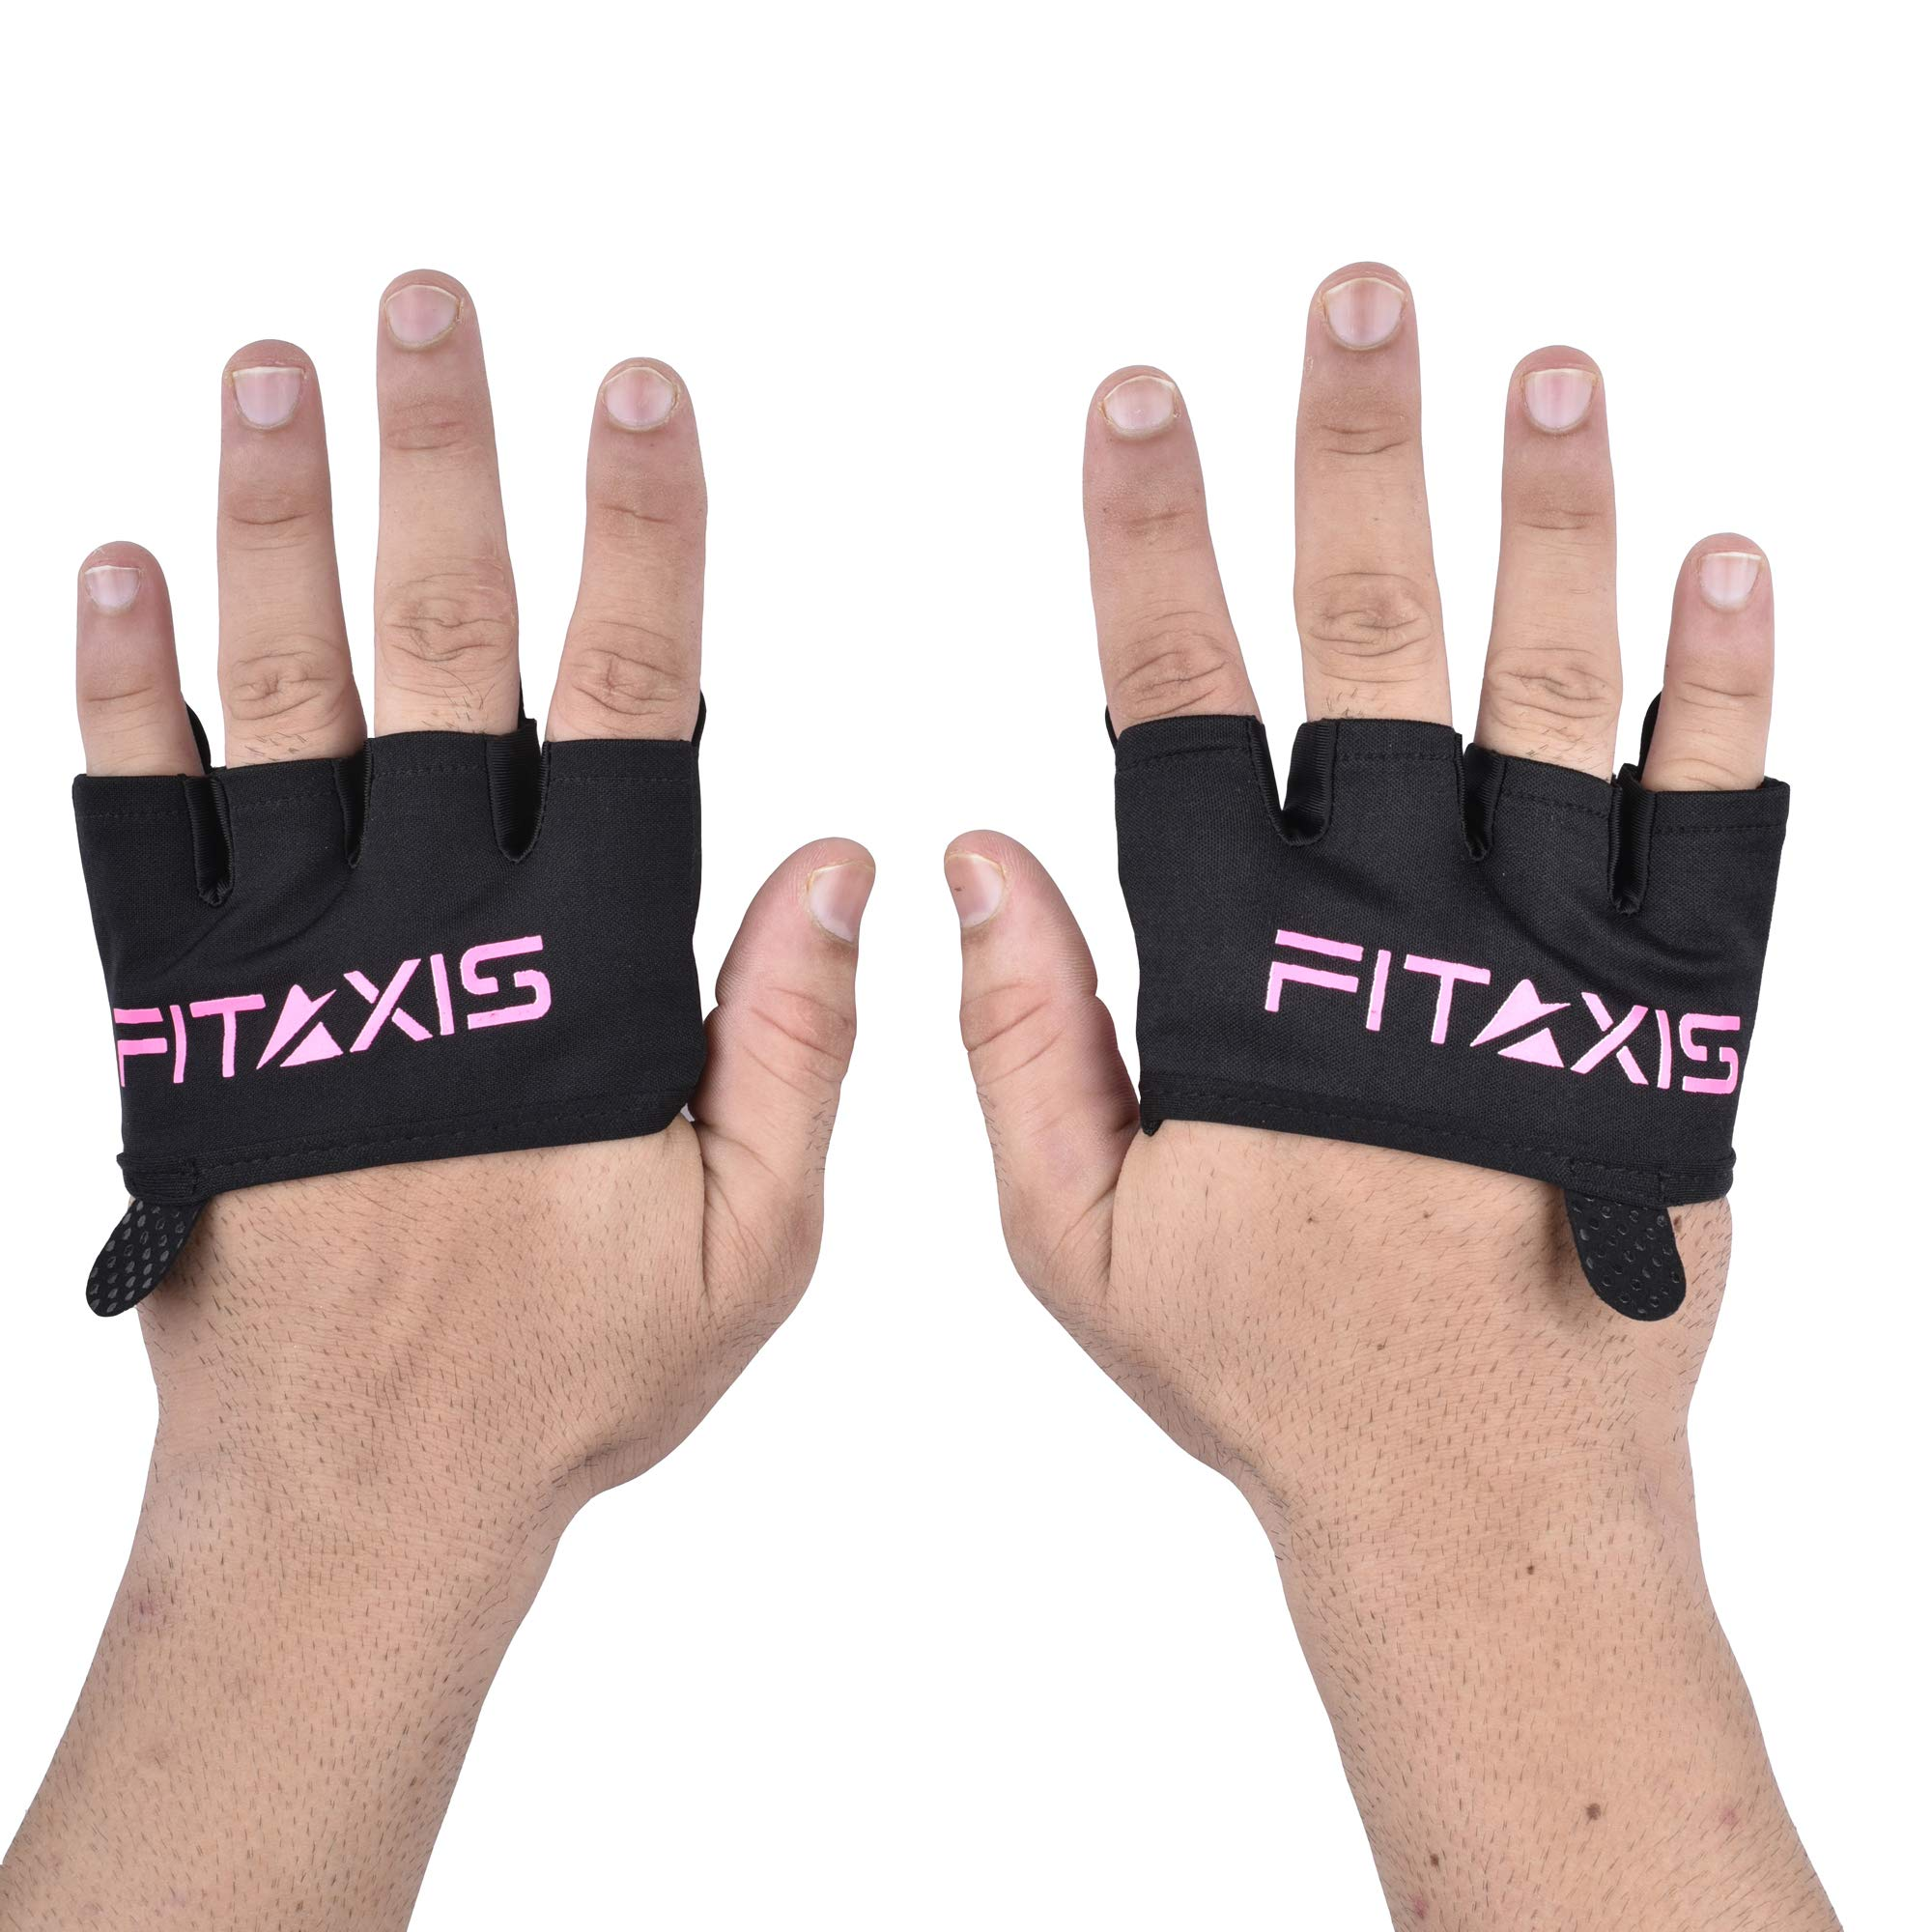 FITAXIS Crossfit Gloves -for Gymnastic, Cross Training,Calisthenics,Fitness,Barbell,Deadlifit (BLK/Pink, L)